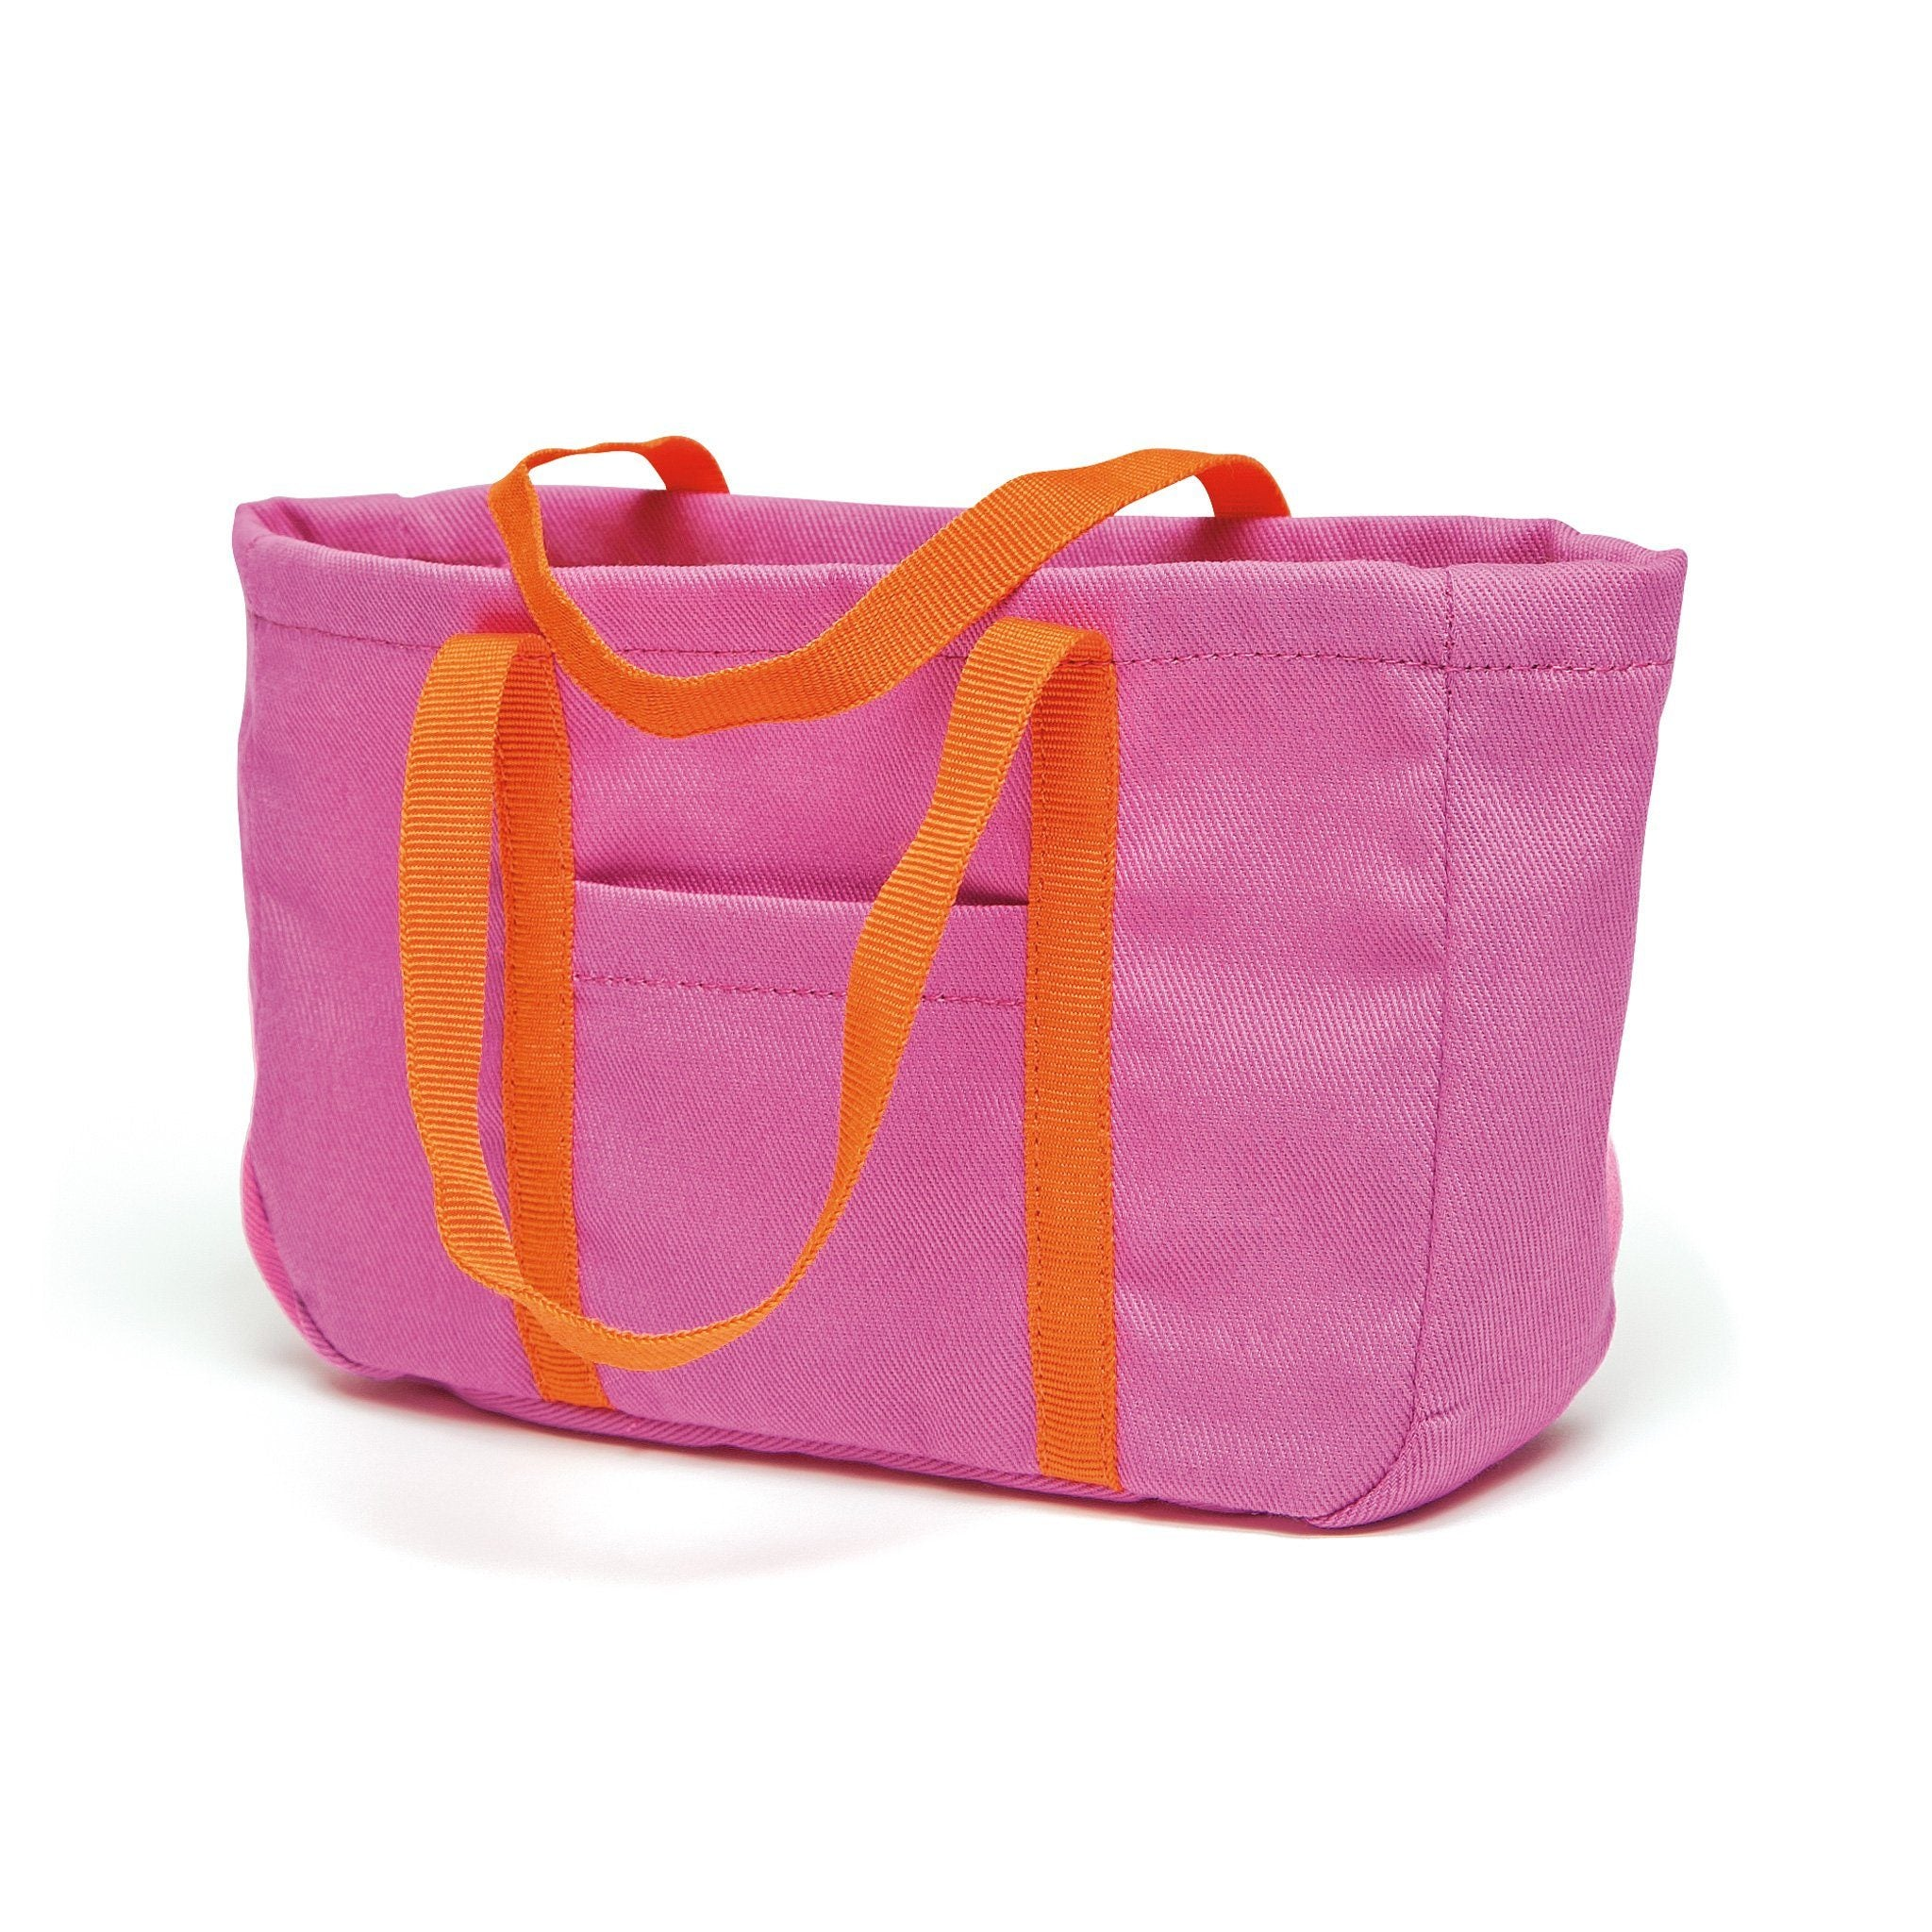 Shoreline Sun pink beach bag fits all 18 inch dolls.